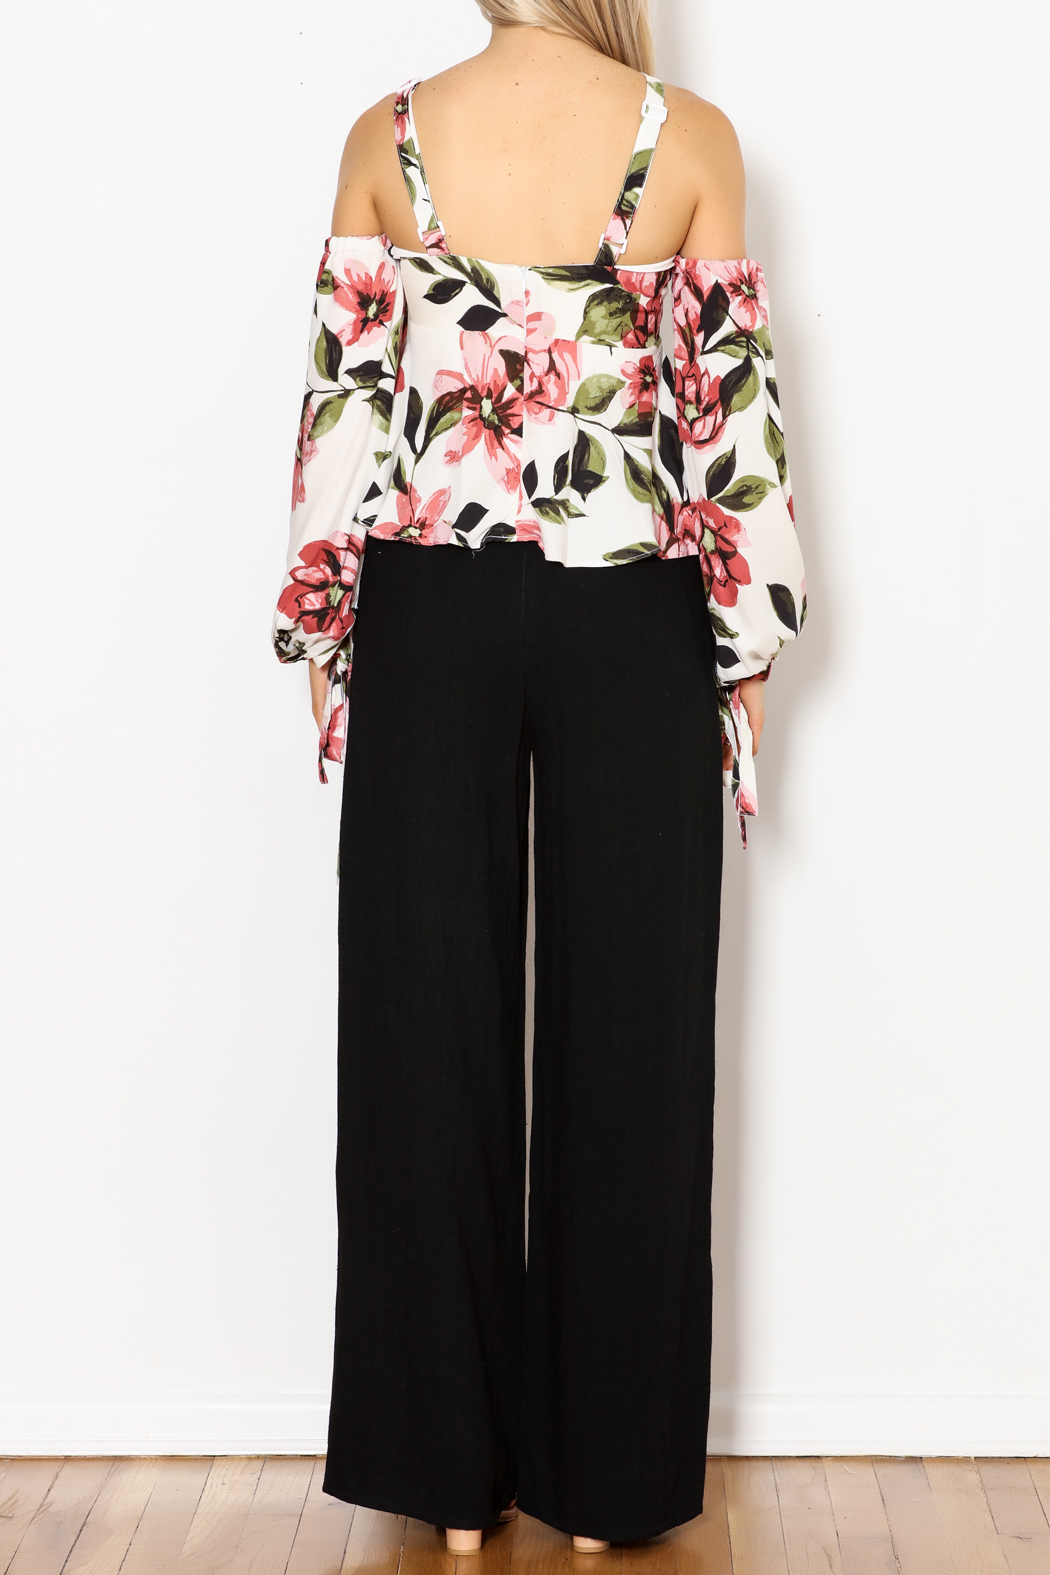 Olivaceous Gina OTS Floral Print Top - Front Full Image